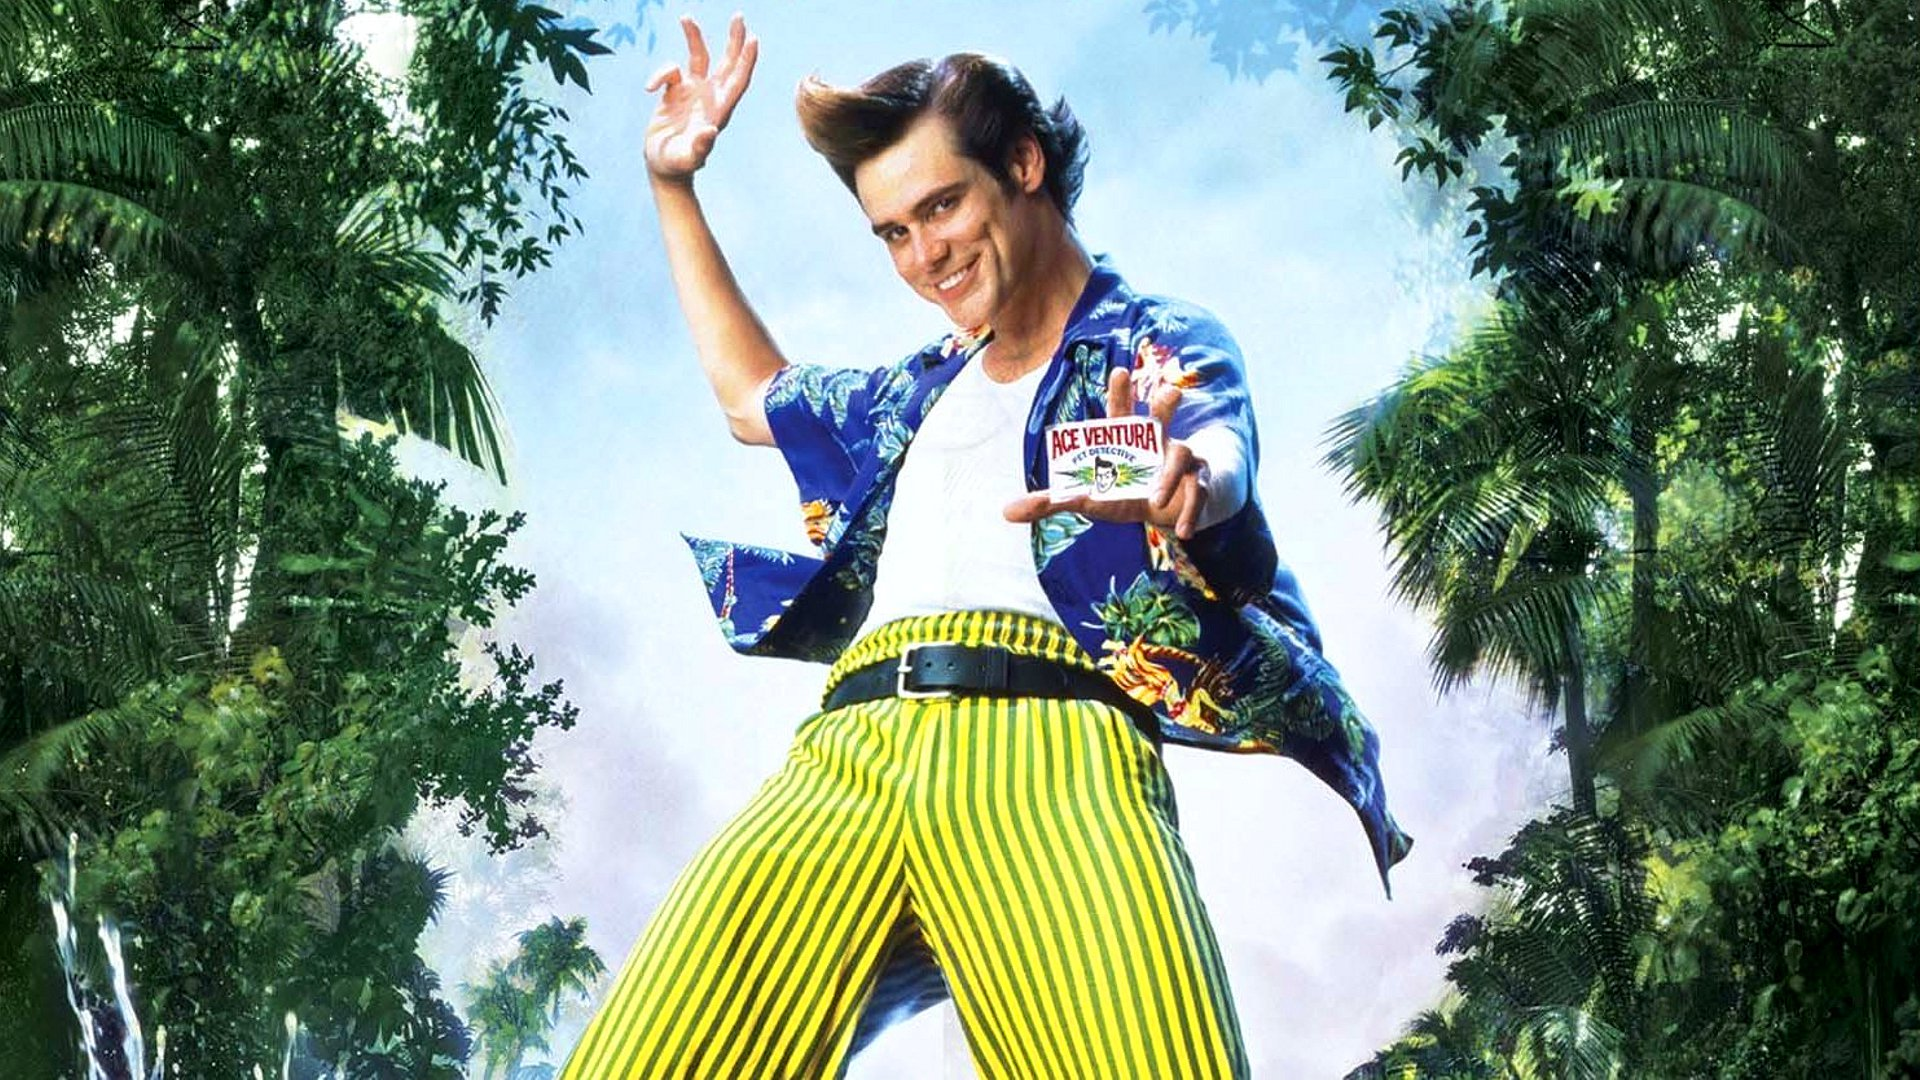 Cool Lion Wallpapers Hd 8 Ace Ventura When Nature Calls Hd Wallpapers